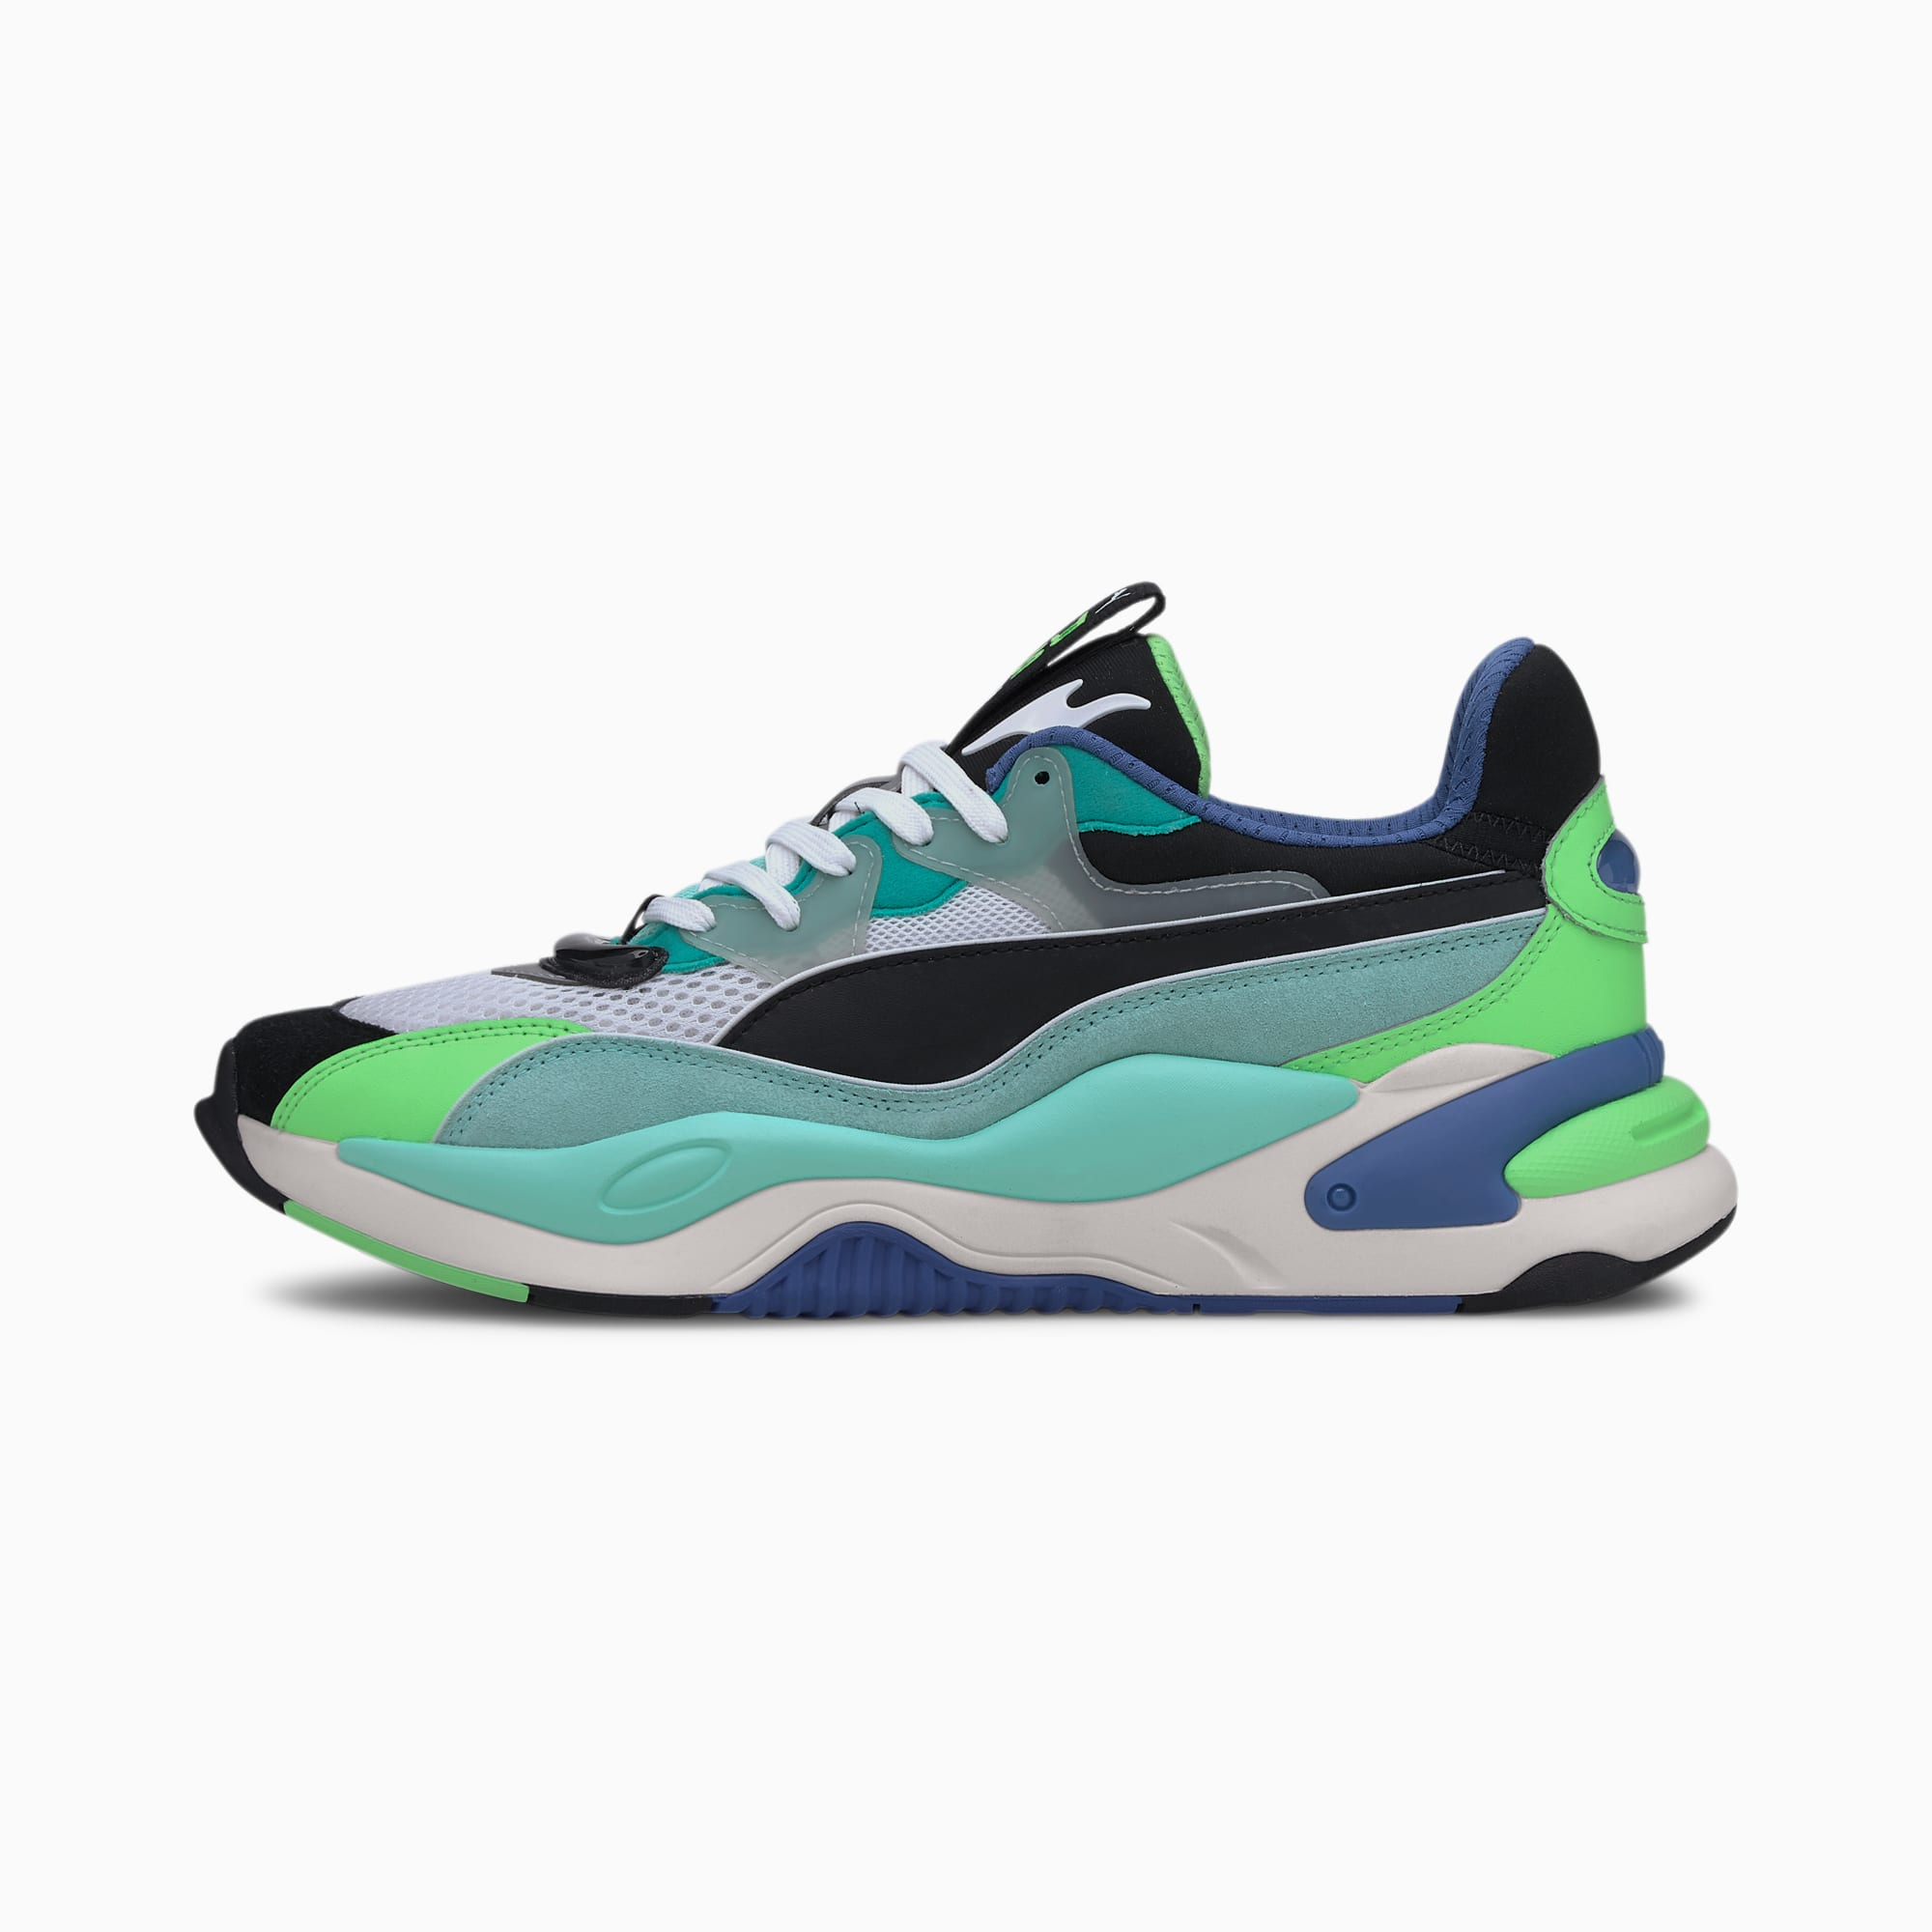 RS-2K Internet Exploring Trainers, Puma Black-ARUBA BLUE, extralarge